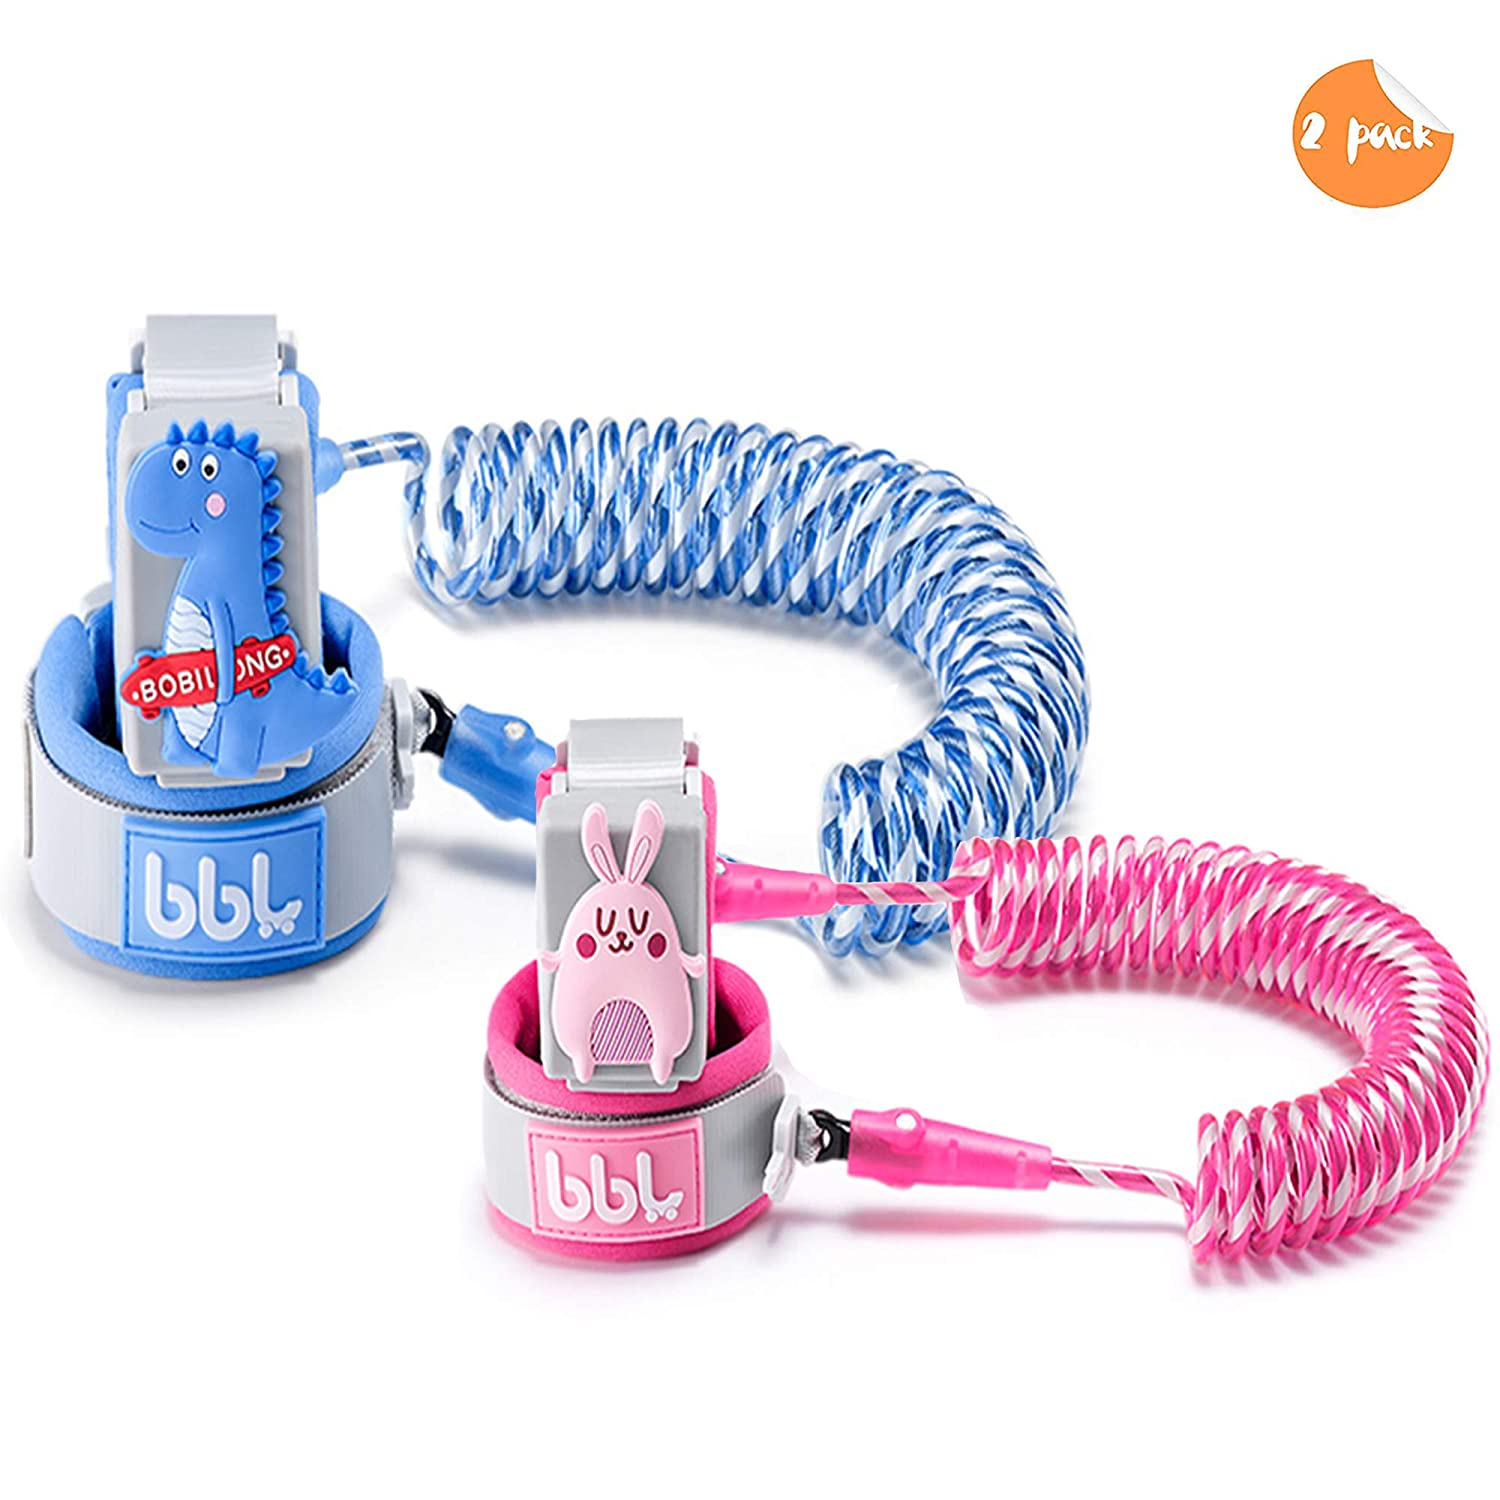 Toddler Harness Walking Leash- Child Anti Lost Wrist Link - Child Safety Harness - Upgrade with Reflective - for Boys and Girls to Disneyland, Zoo or Mall. … (Blue and Pink)